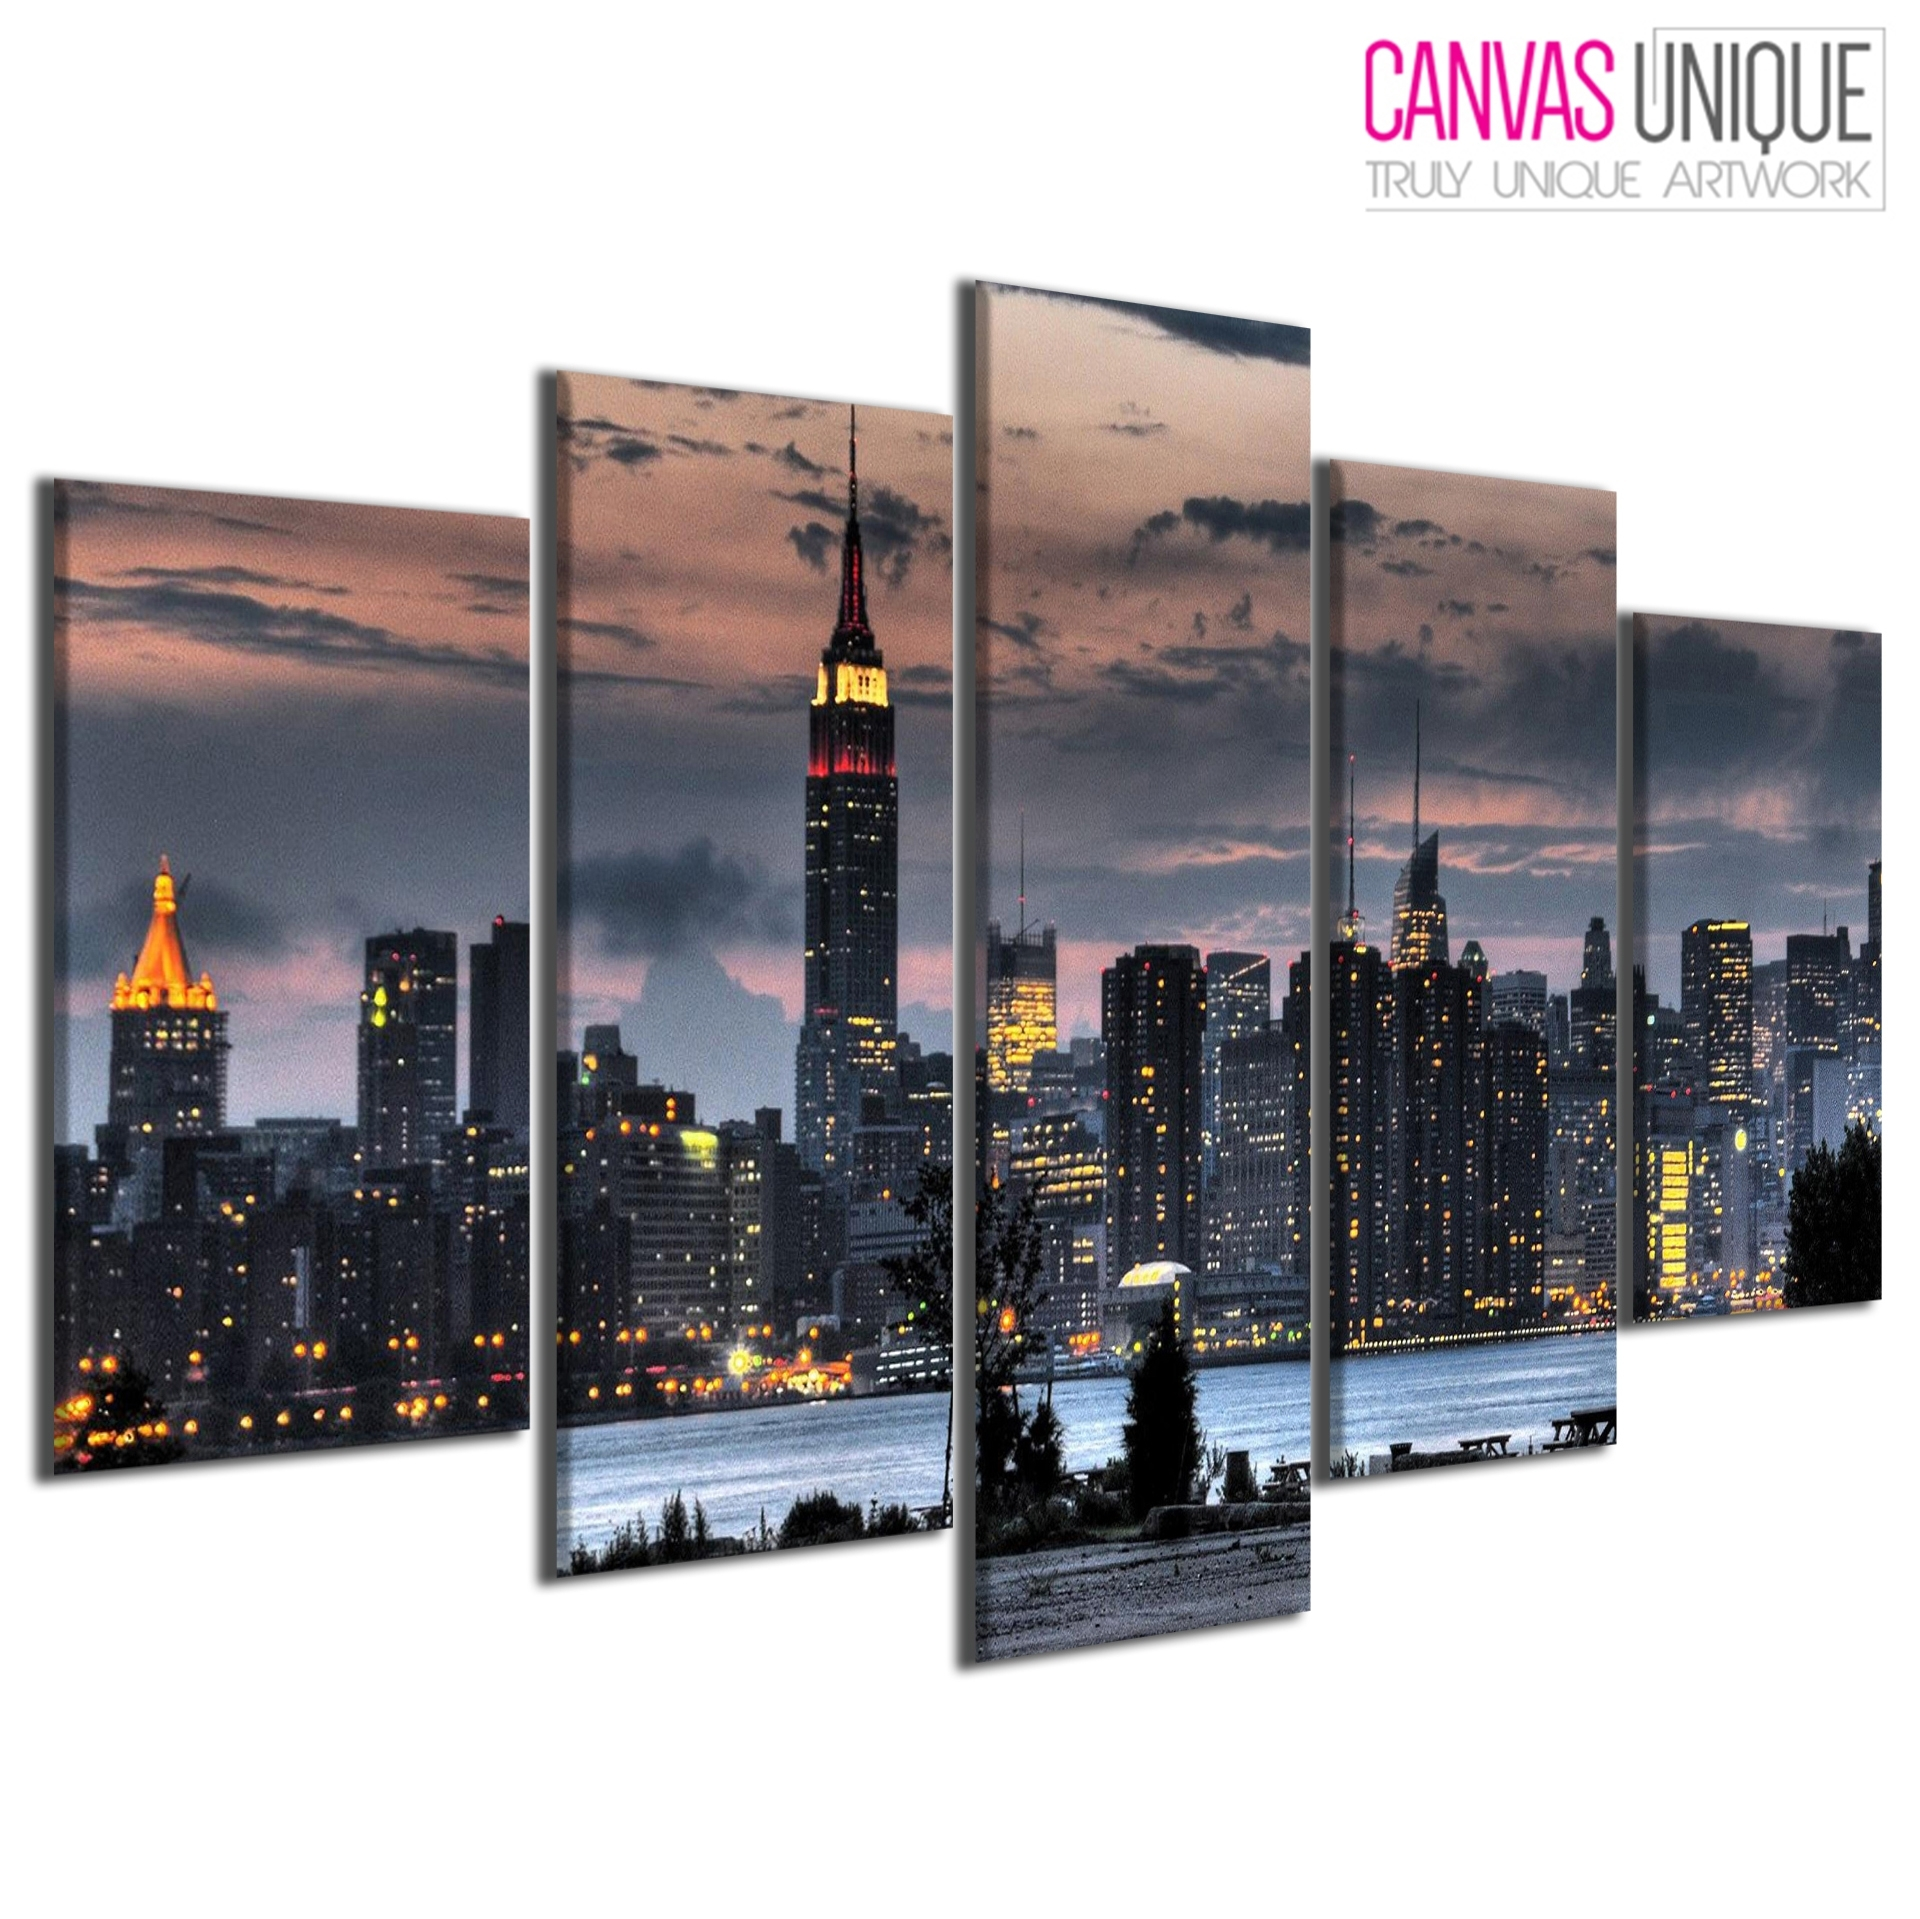 Pc148 New York Cityscape Scenic Multi Frame Canvas Wall Art Print | Ebay For Current New York Canvas Wall Art (View 10 of 15)